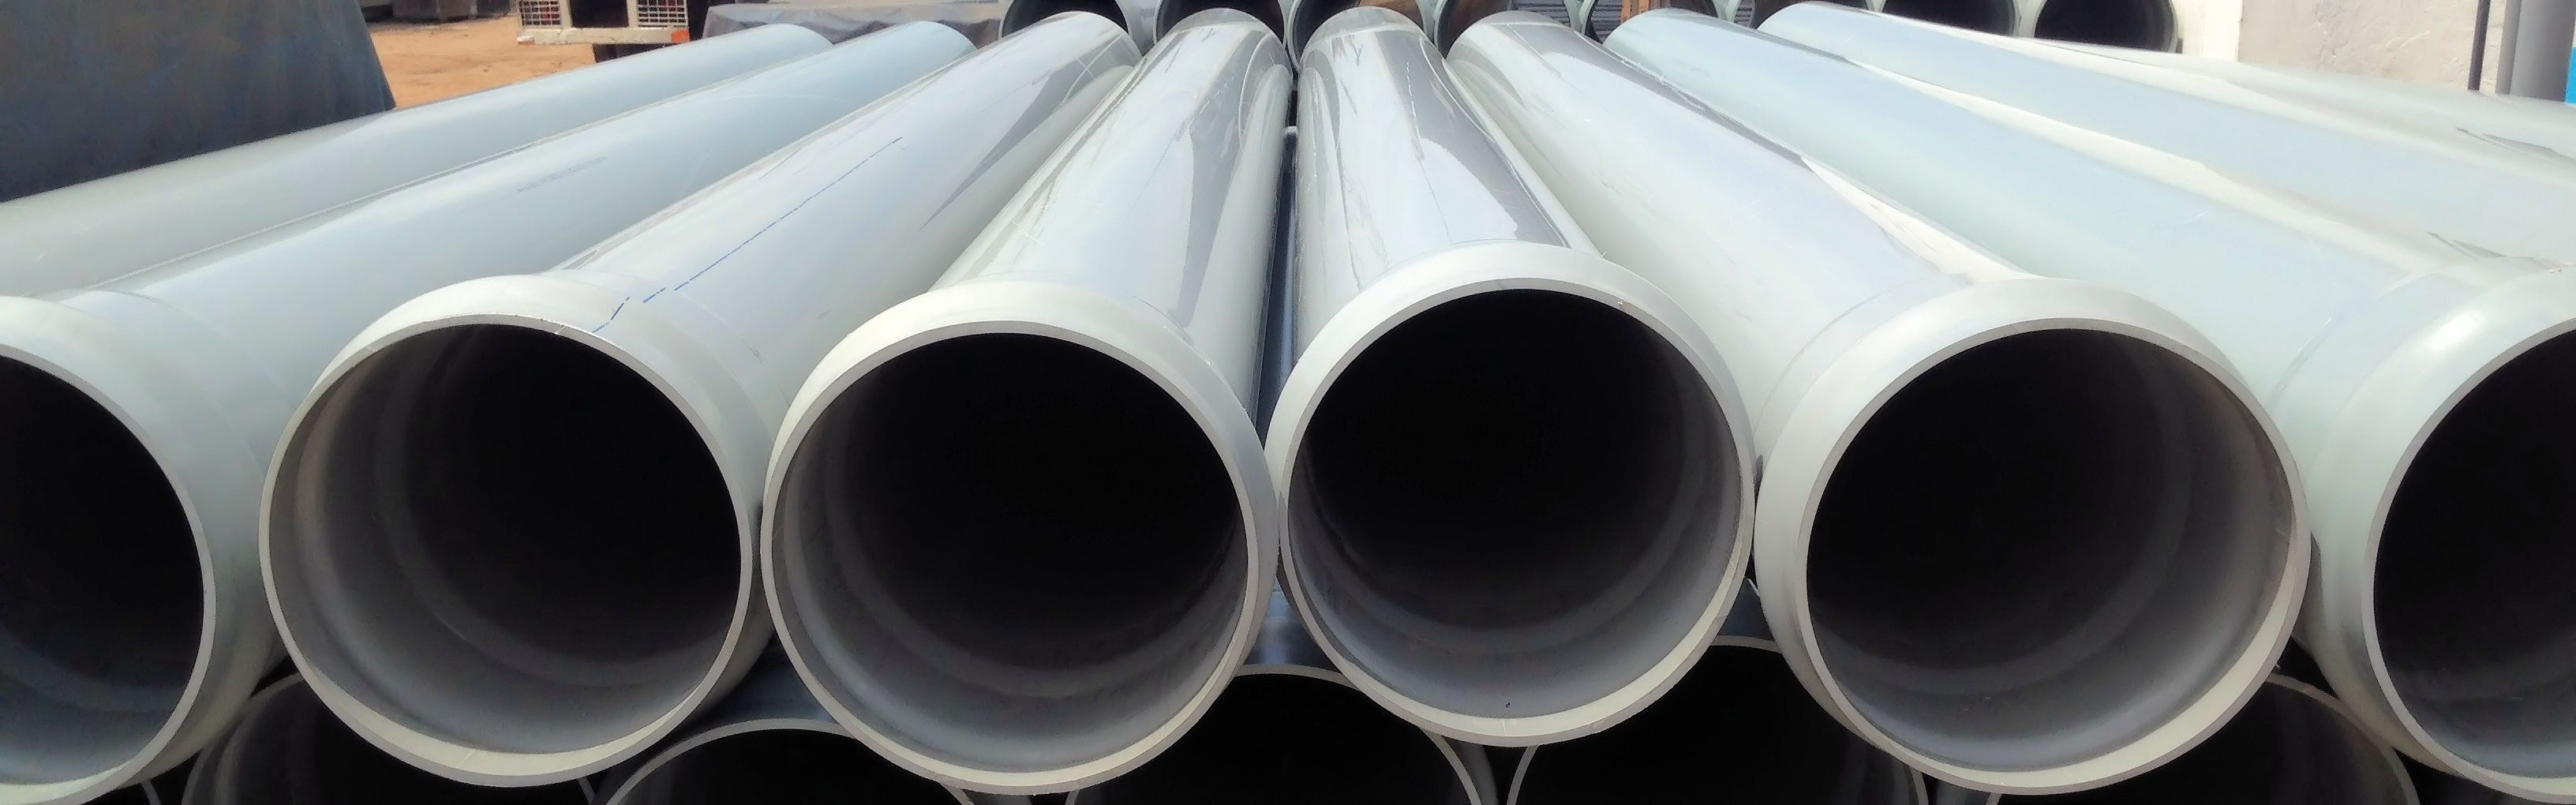 PVC SEWER & DRANAGE PIPES Image